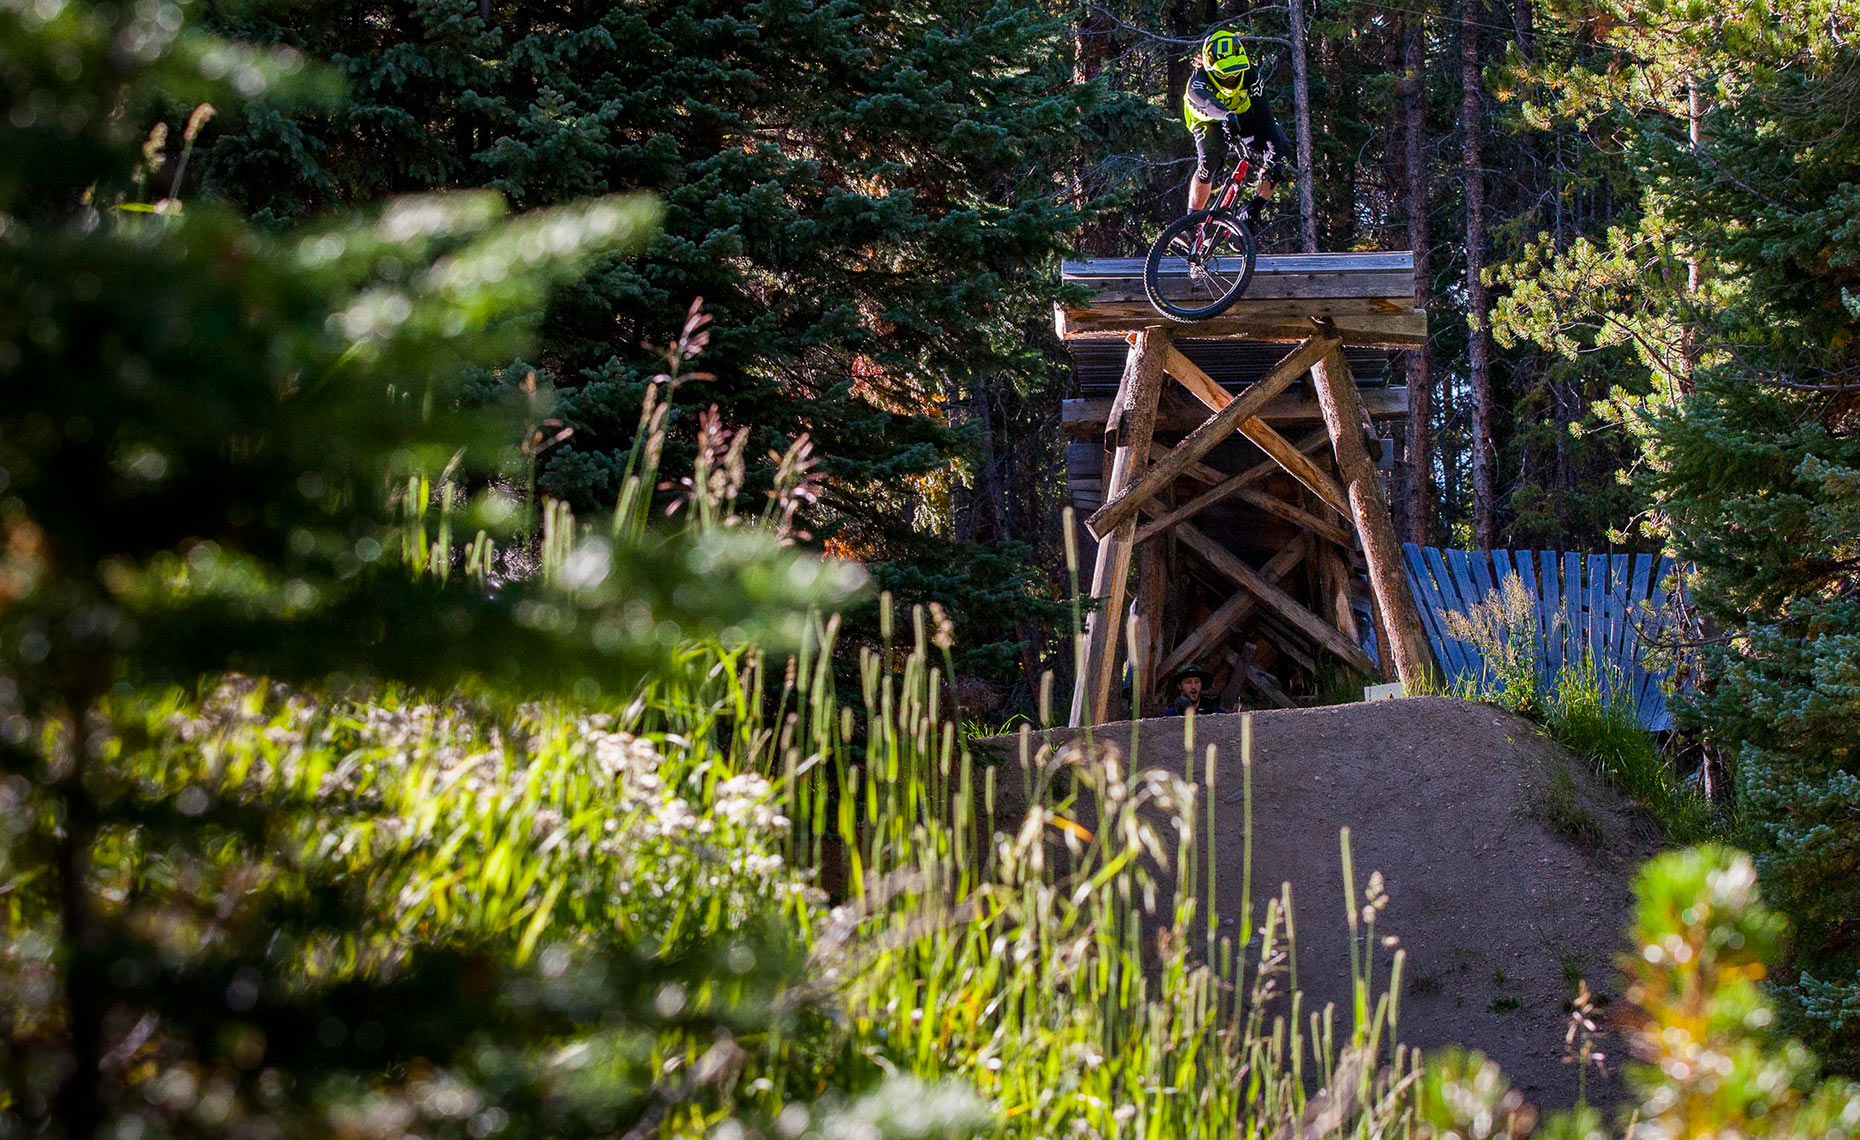 20170825-Trestle-Bike-Park-Chris-Wellhausen-1389